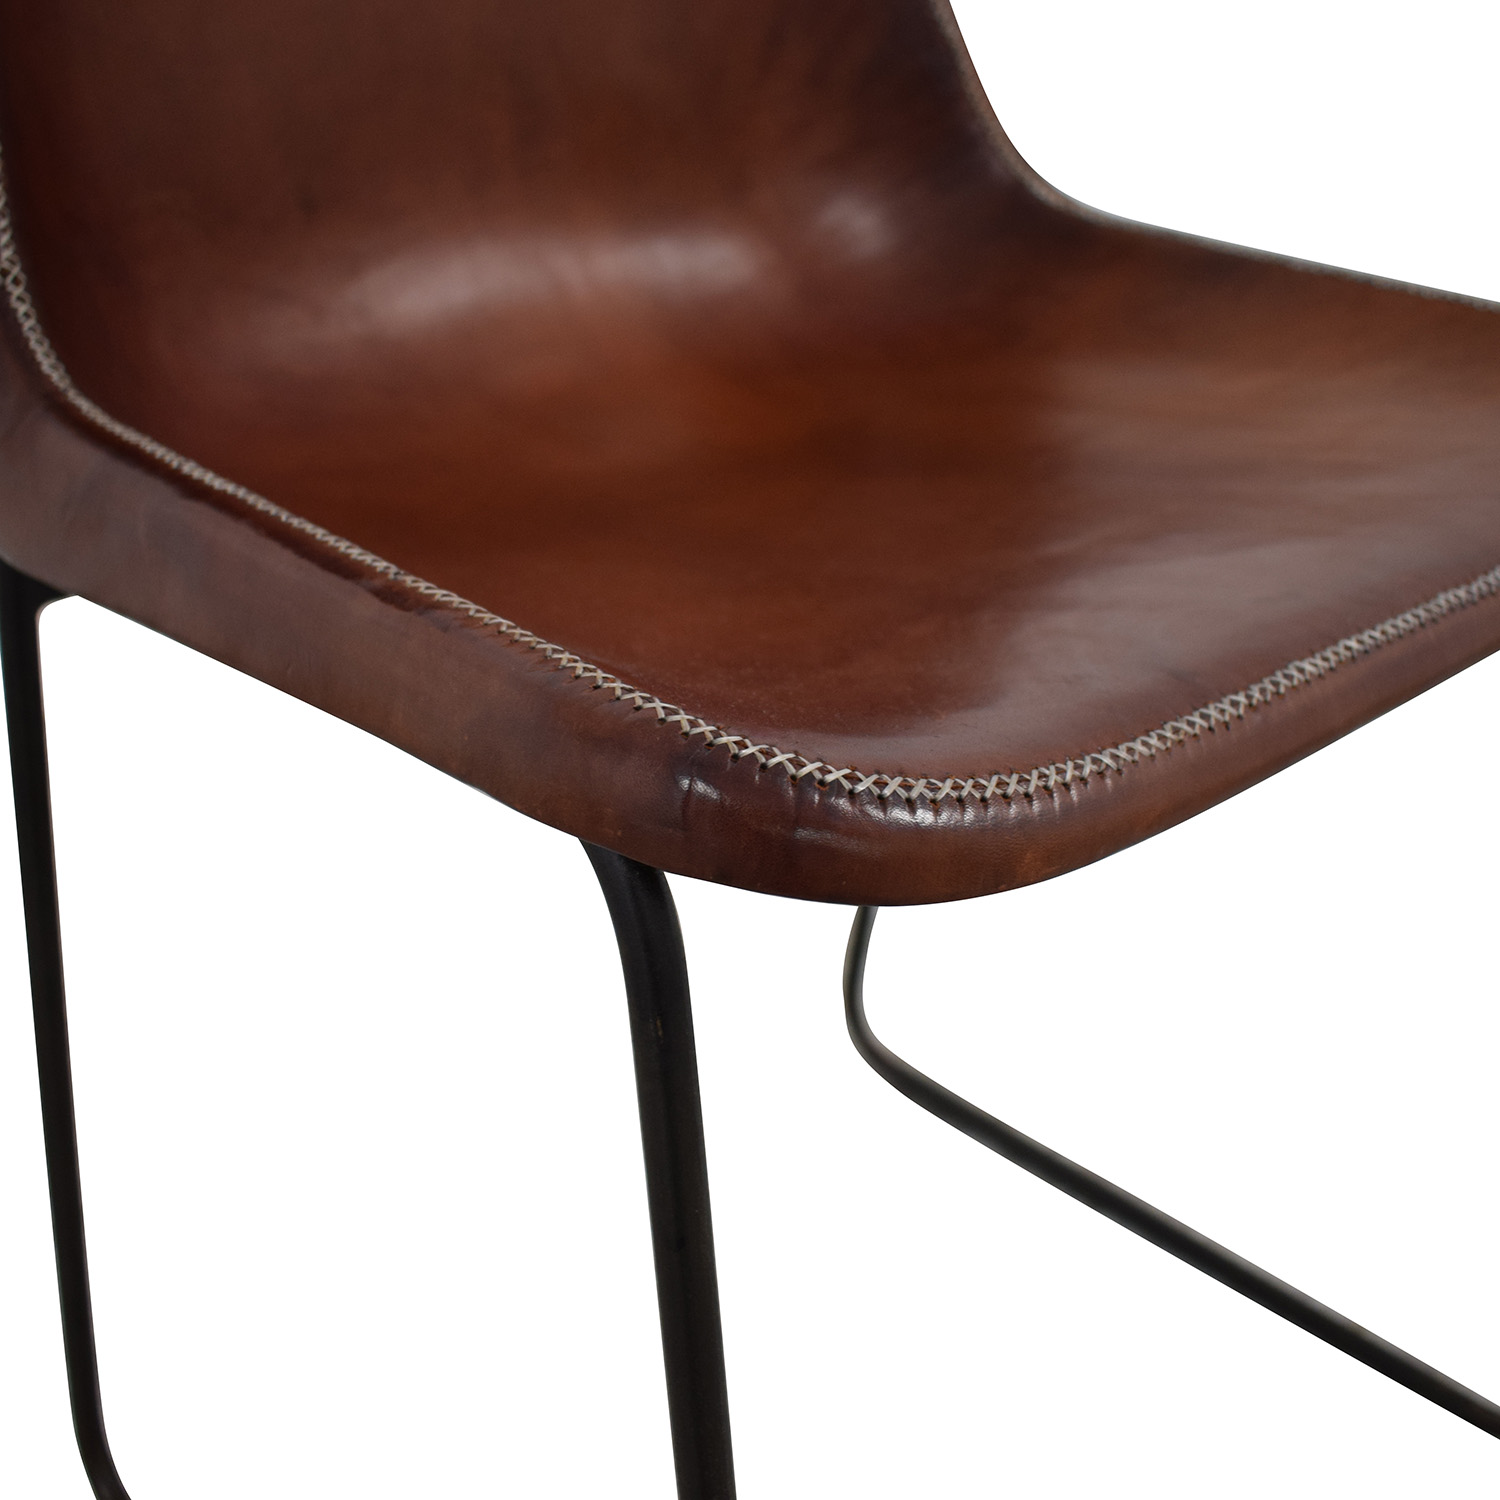 ABC Carpet & Home ABC Carpet & Home Giron Brown Leather Chair